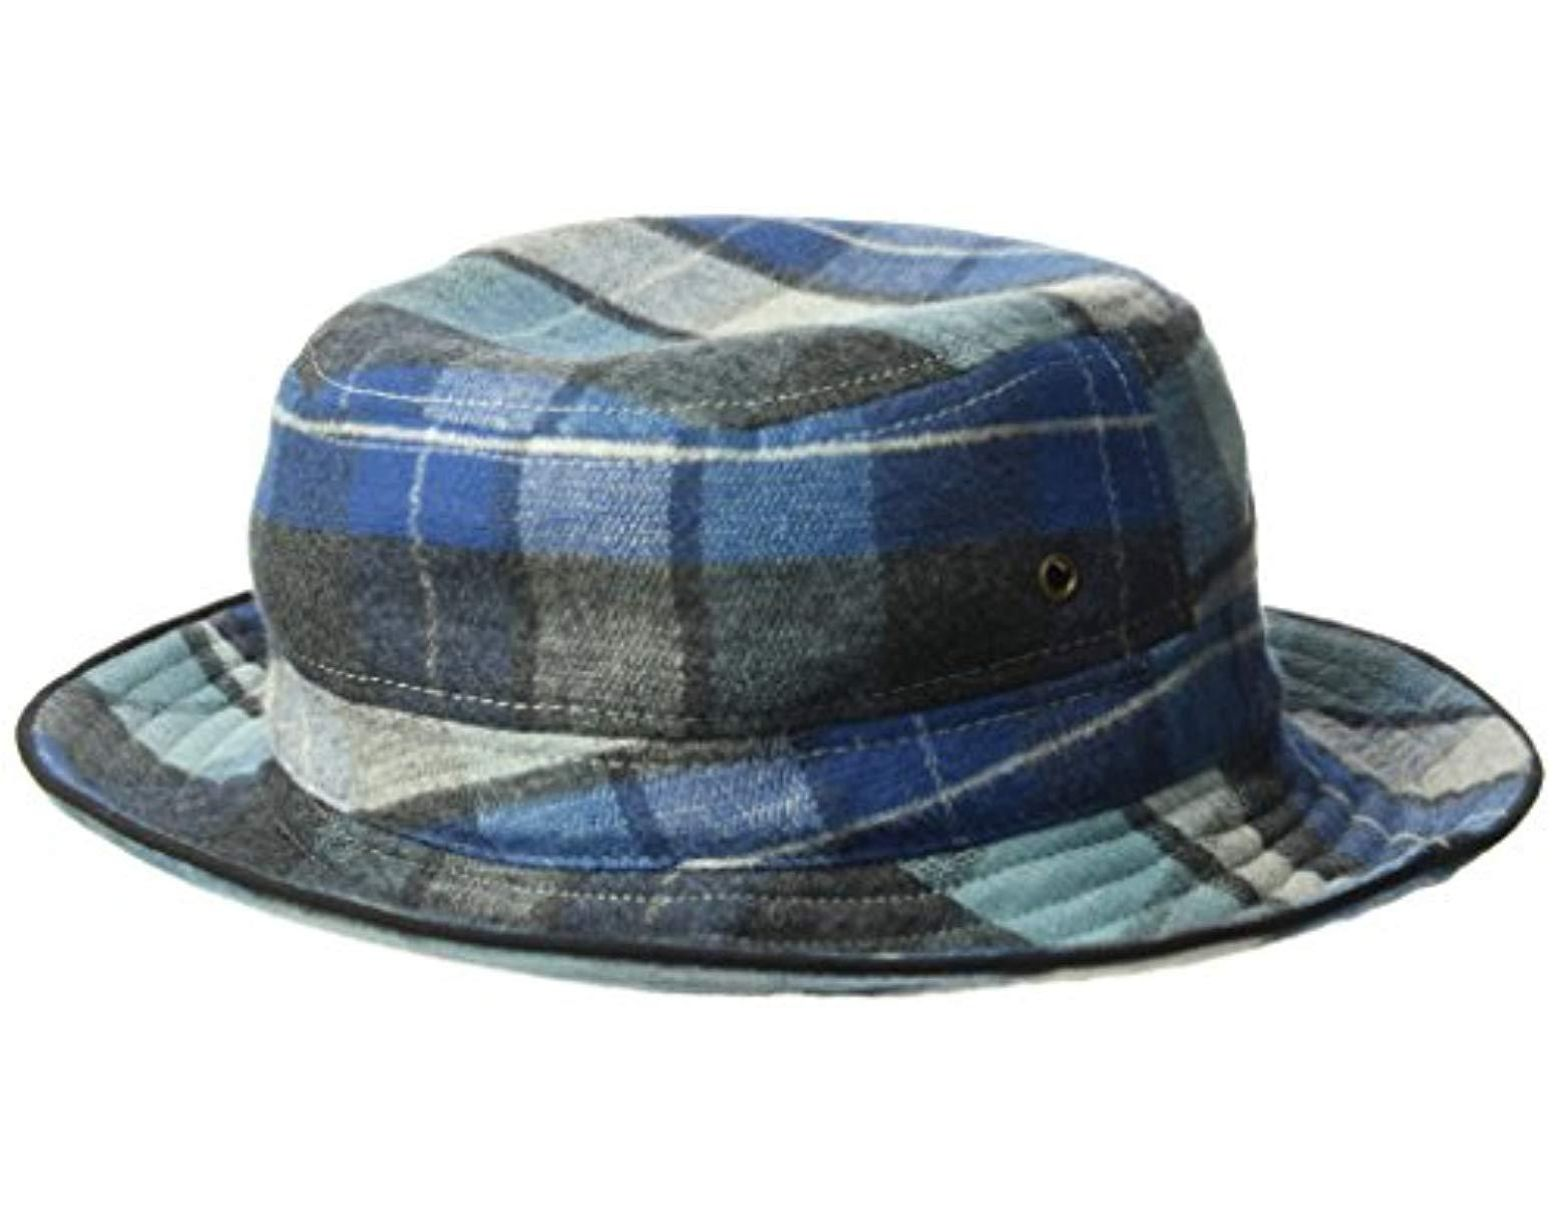 b81f8b4400bc10 Pendleton Surf Bucket Hat in Blue for Men - Save 14% - Lyst